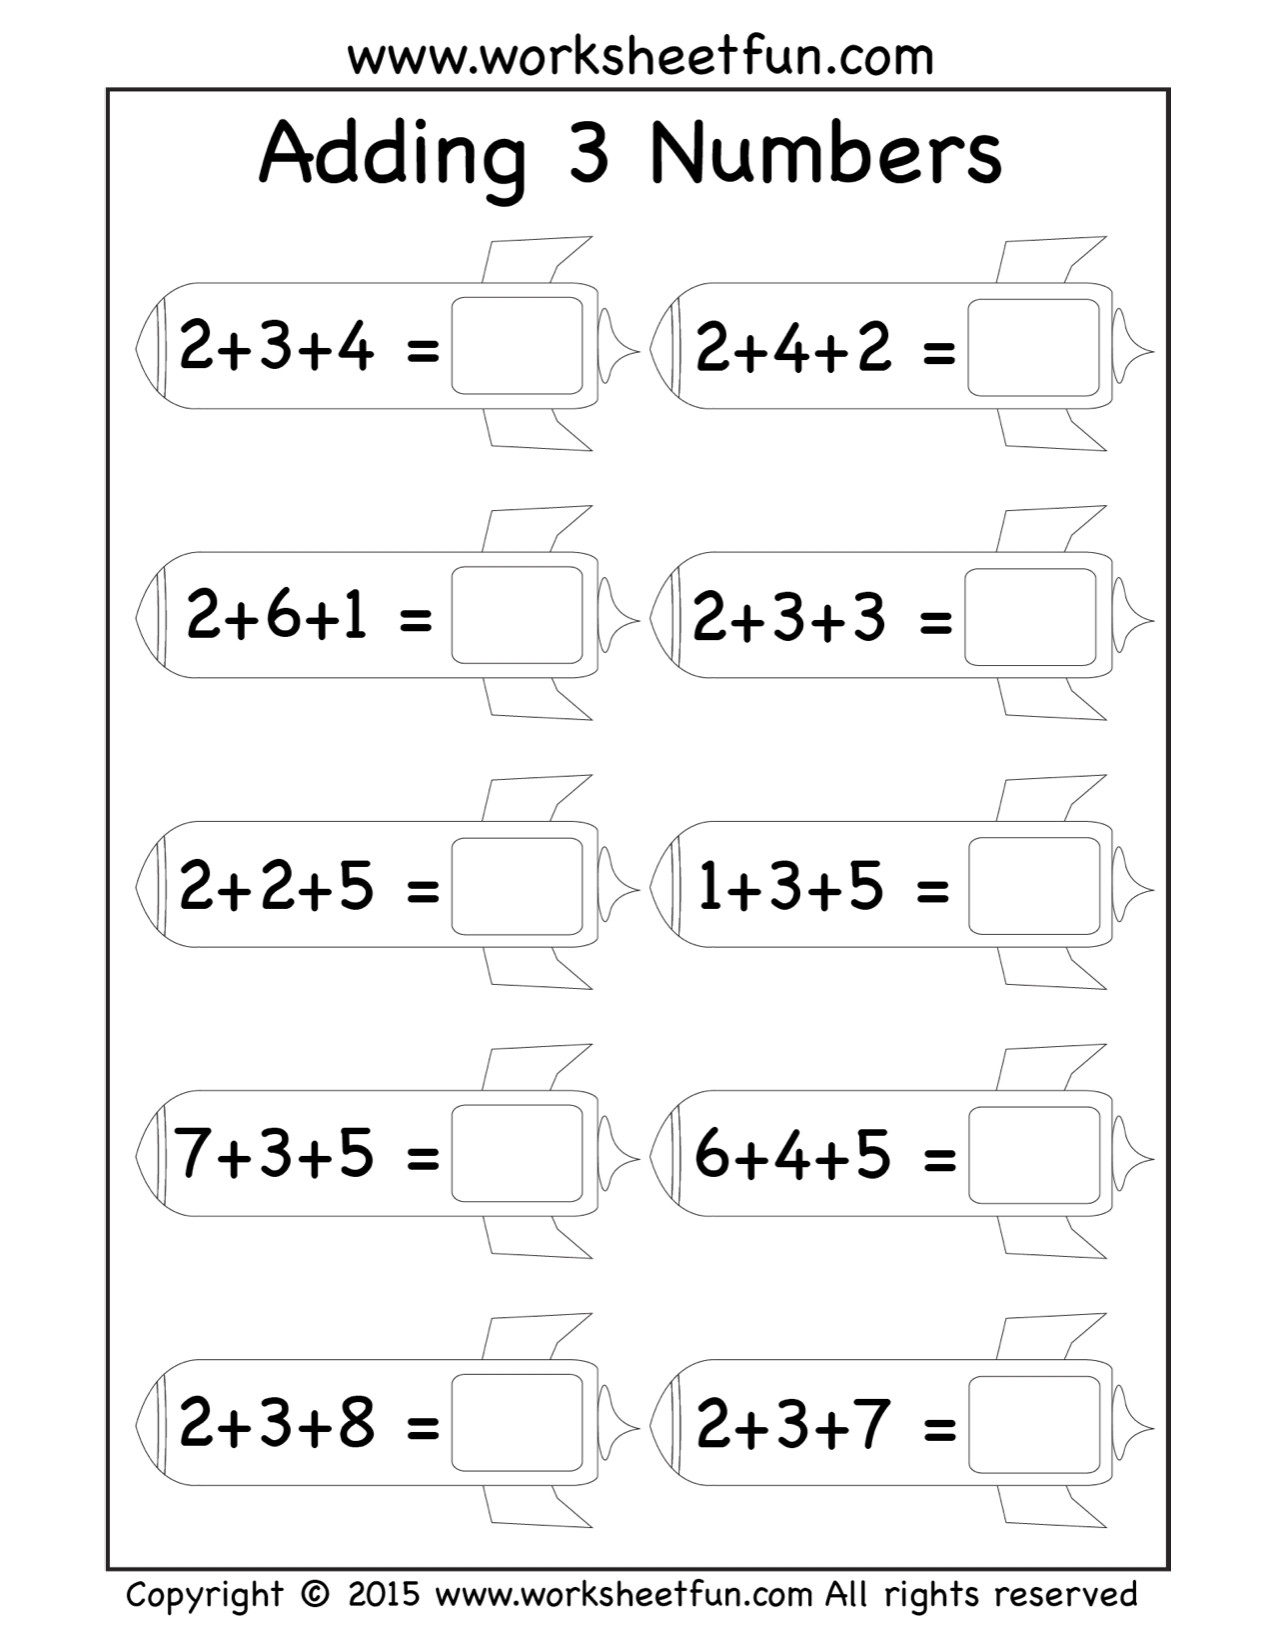 hight resolution of 5 Free Math Worksheets First Grade 1 Addition Add 2 Digit 1 Digit Numbers  Missing Addend No Regrouping - apocalomegaproductions.com